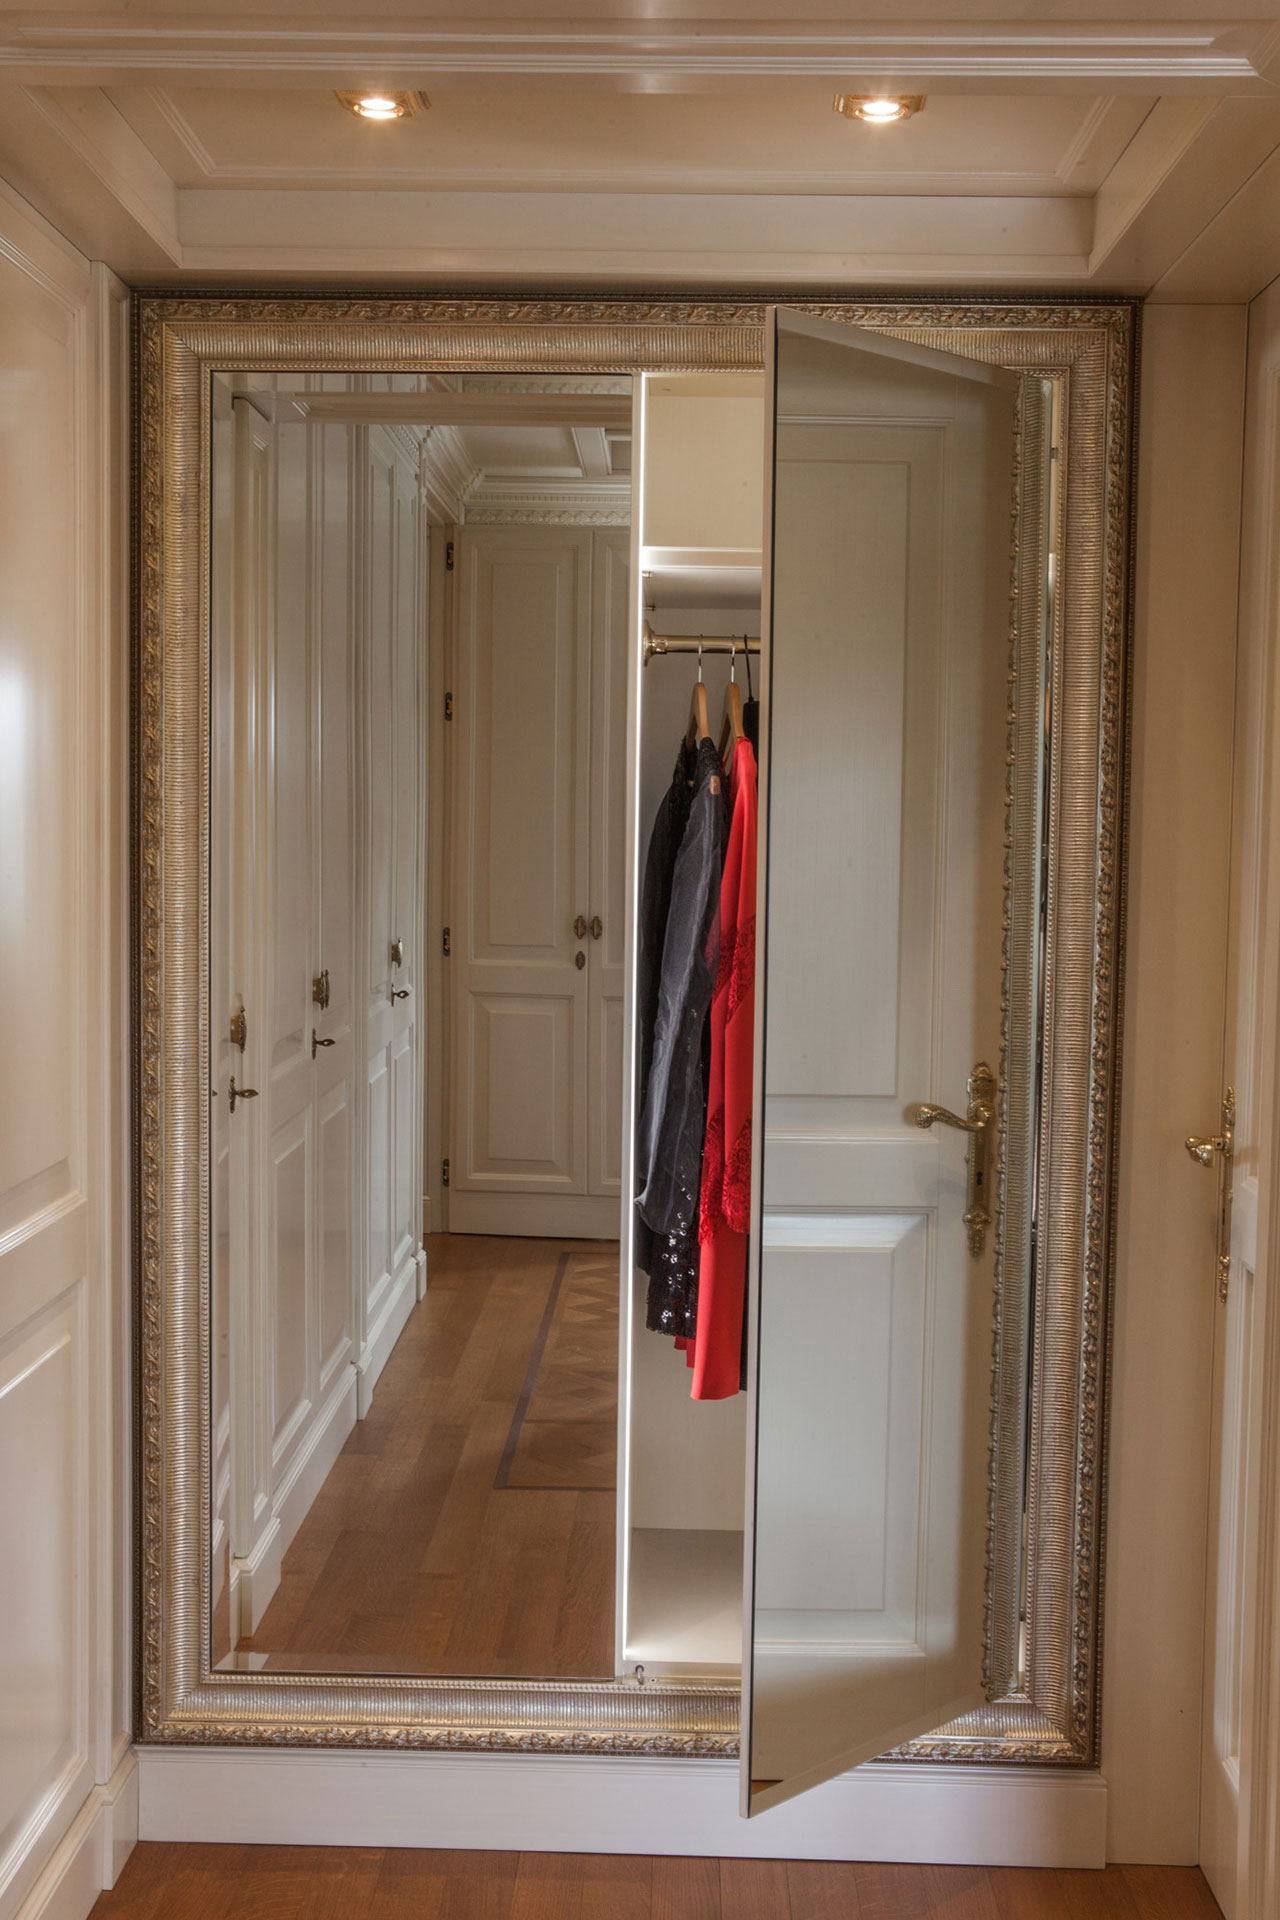 Faoma Mirrored wardrobe with boiserie